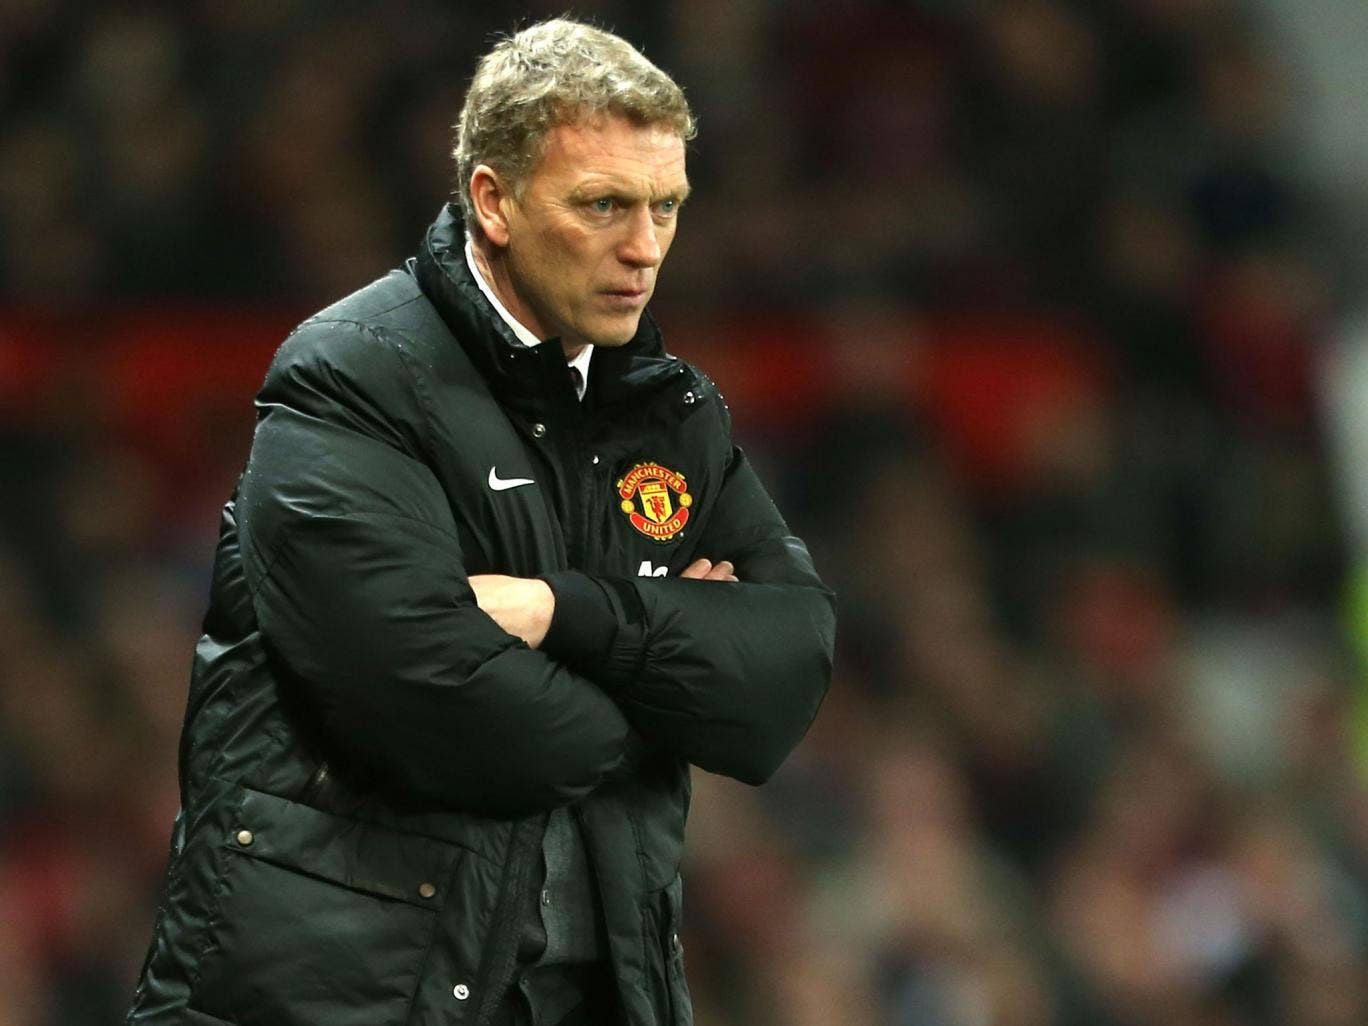 Manchester United manager David Moyes scowls during his side's League Cup defeat to Sunderland